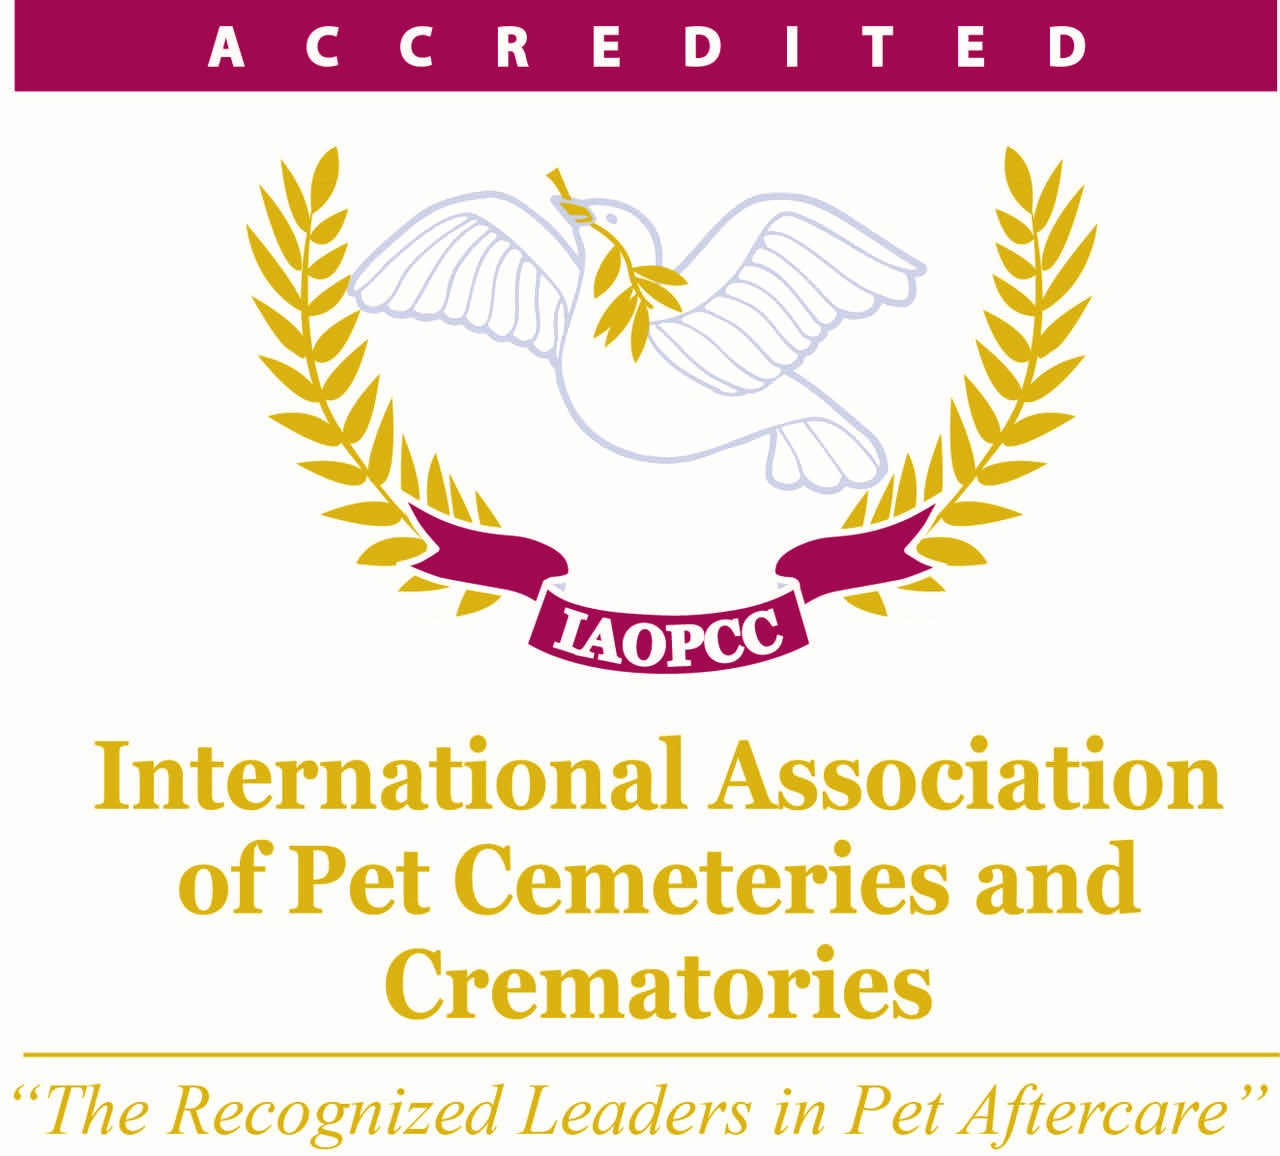 International association of pet cemeteries and crematories.